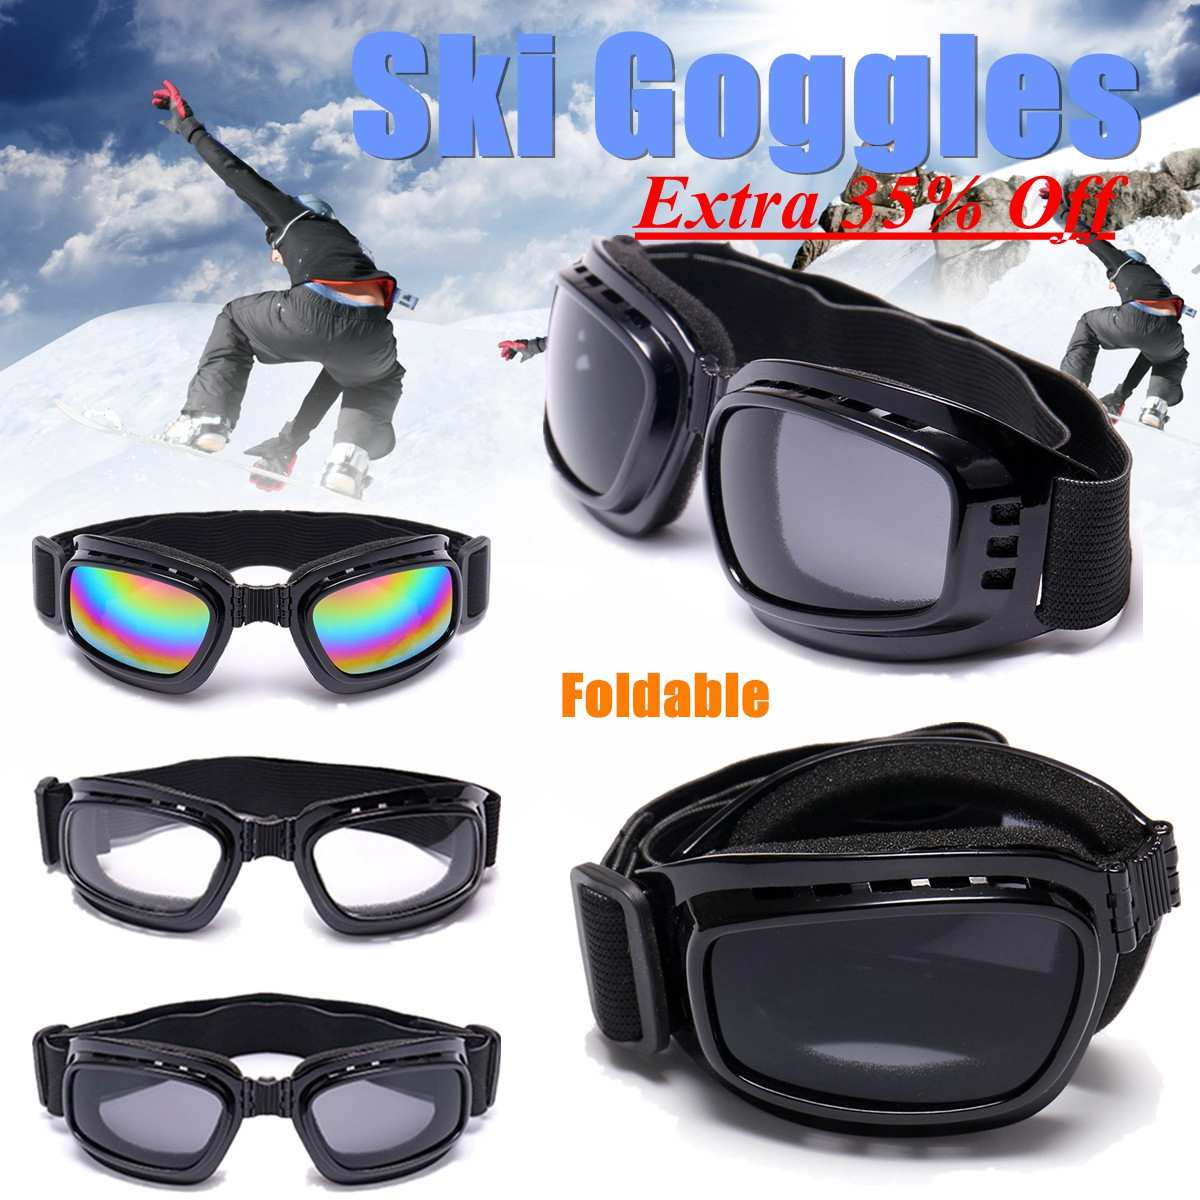 Self-Conscious Foldable Ski Skiing Goggles Snowboard Motorcycle Glasses Off Road Racing Eyewear Black Frame Sports & Entertainment Color/clear/grey Len Ergonomic Activating Blood Circulation And Strengthening Sinews And Bones